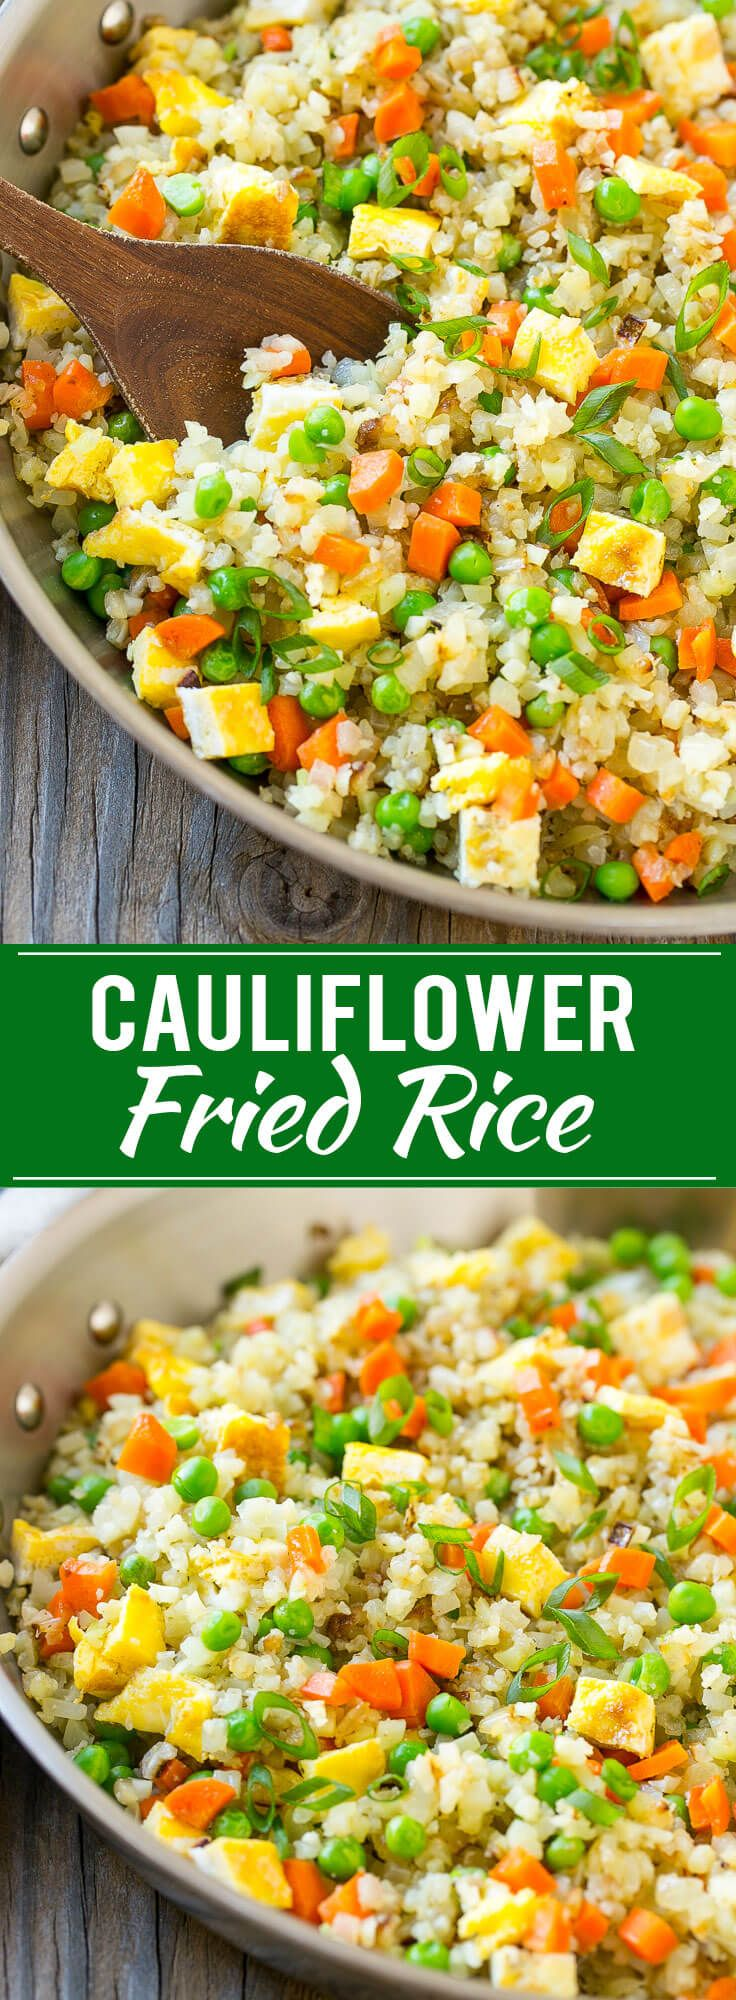 Cauliflower Fried Rice recipe! Easy, delicious and healthy!!